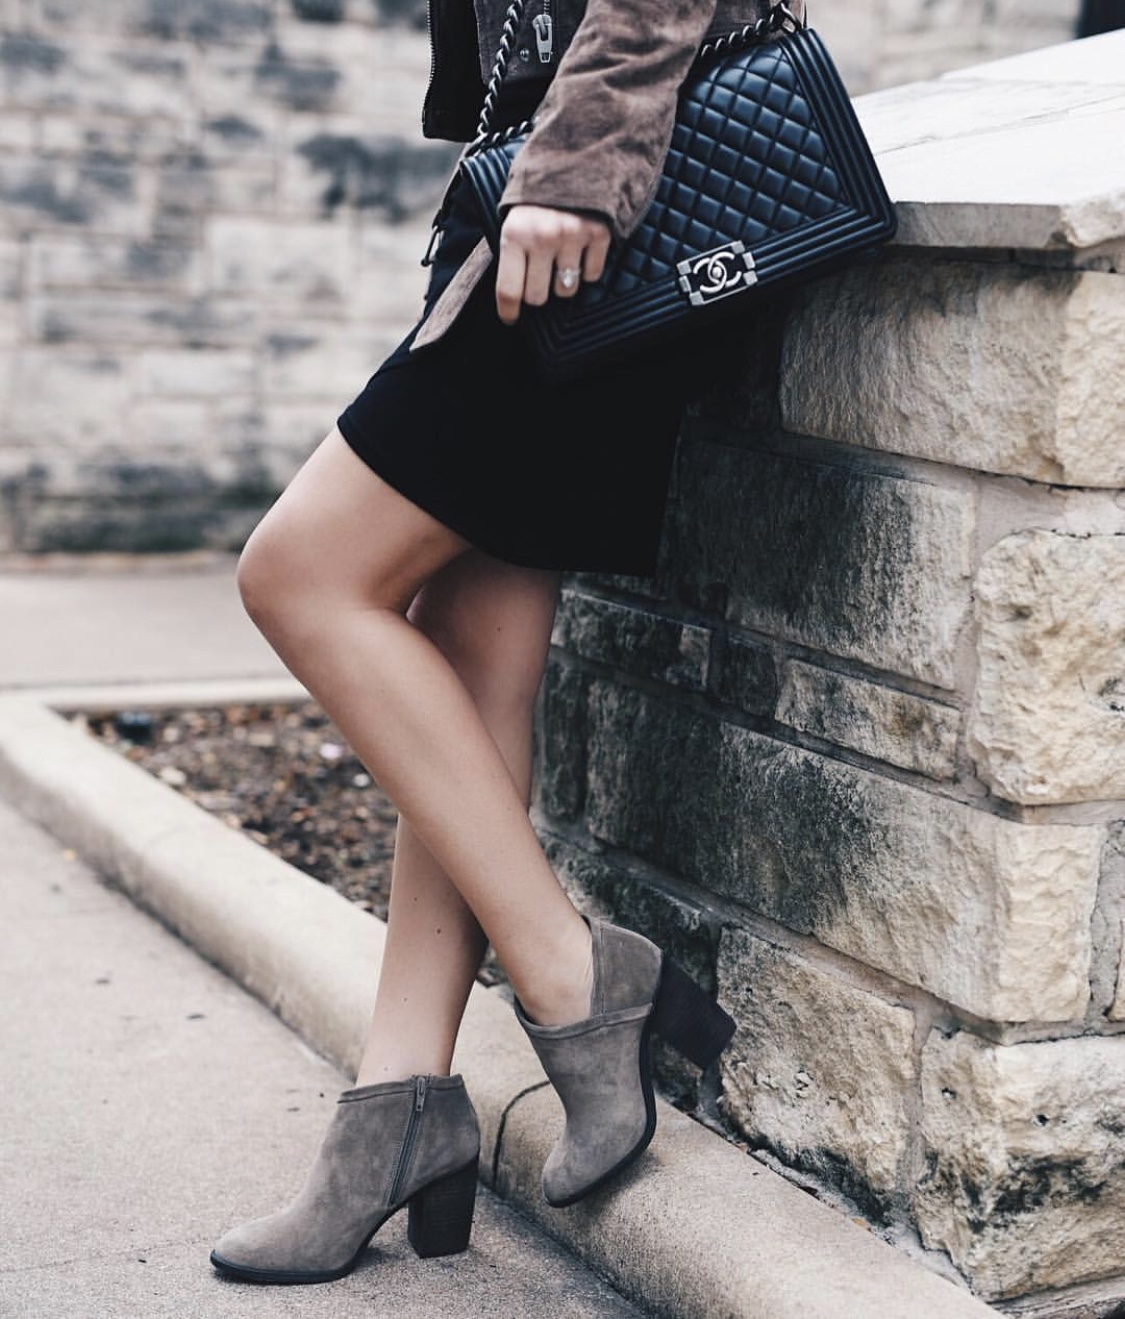 Austin Blogger DTKAustin has rounded up her favorite Fall looks from November. My best selling looks are linked and ready to easily shop.   fall fashion tips   fall outfit ideas   fall style tips   what to wear for fall   cool weather fashion   fashion for fall   style tips for fall   outfit ideas for fall    Dressed to Kill #fallstyle #fashion #fashionblogger  - Best of November Looks - Instagram Fashion Roundup by Austin style blogger Dressed to Kill